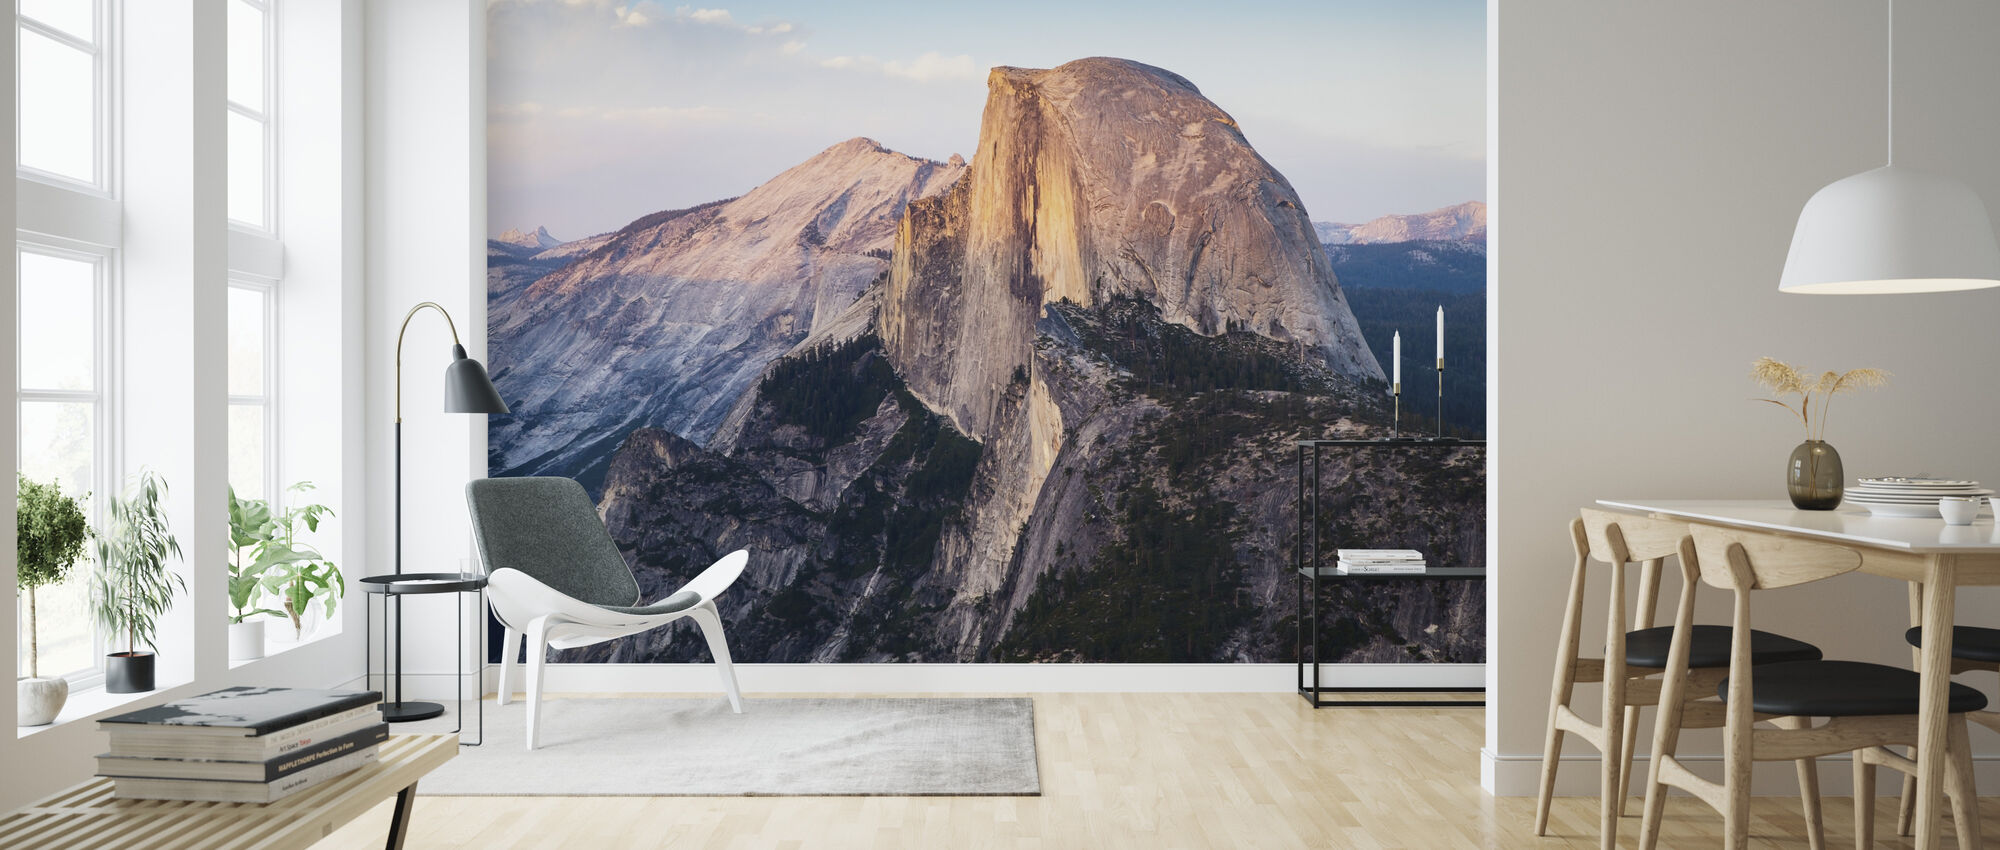 Half Dome Mountain - Wallpaper - Living Room